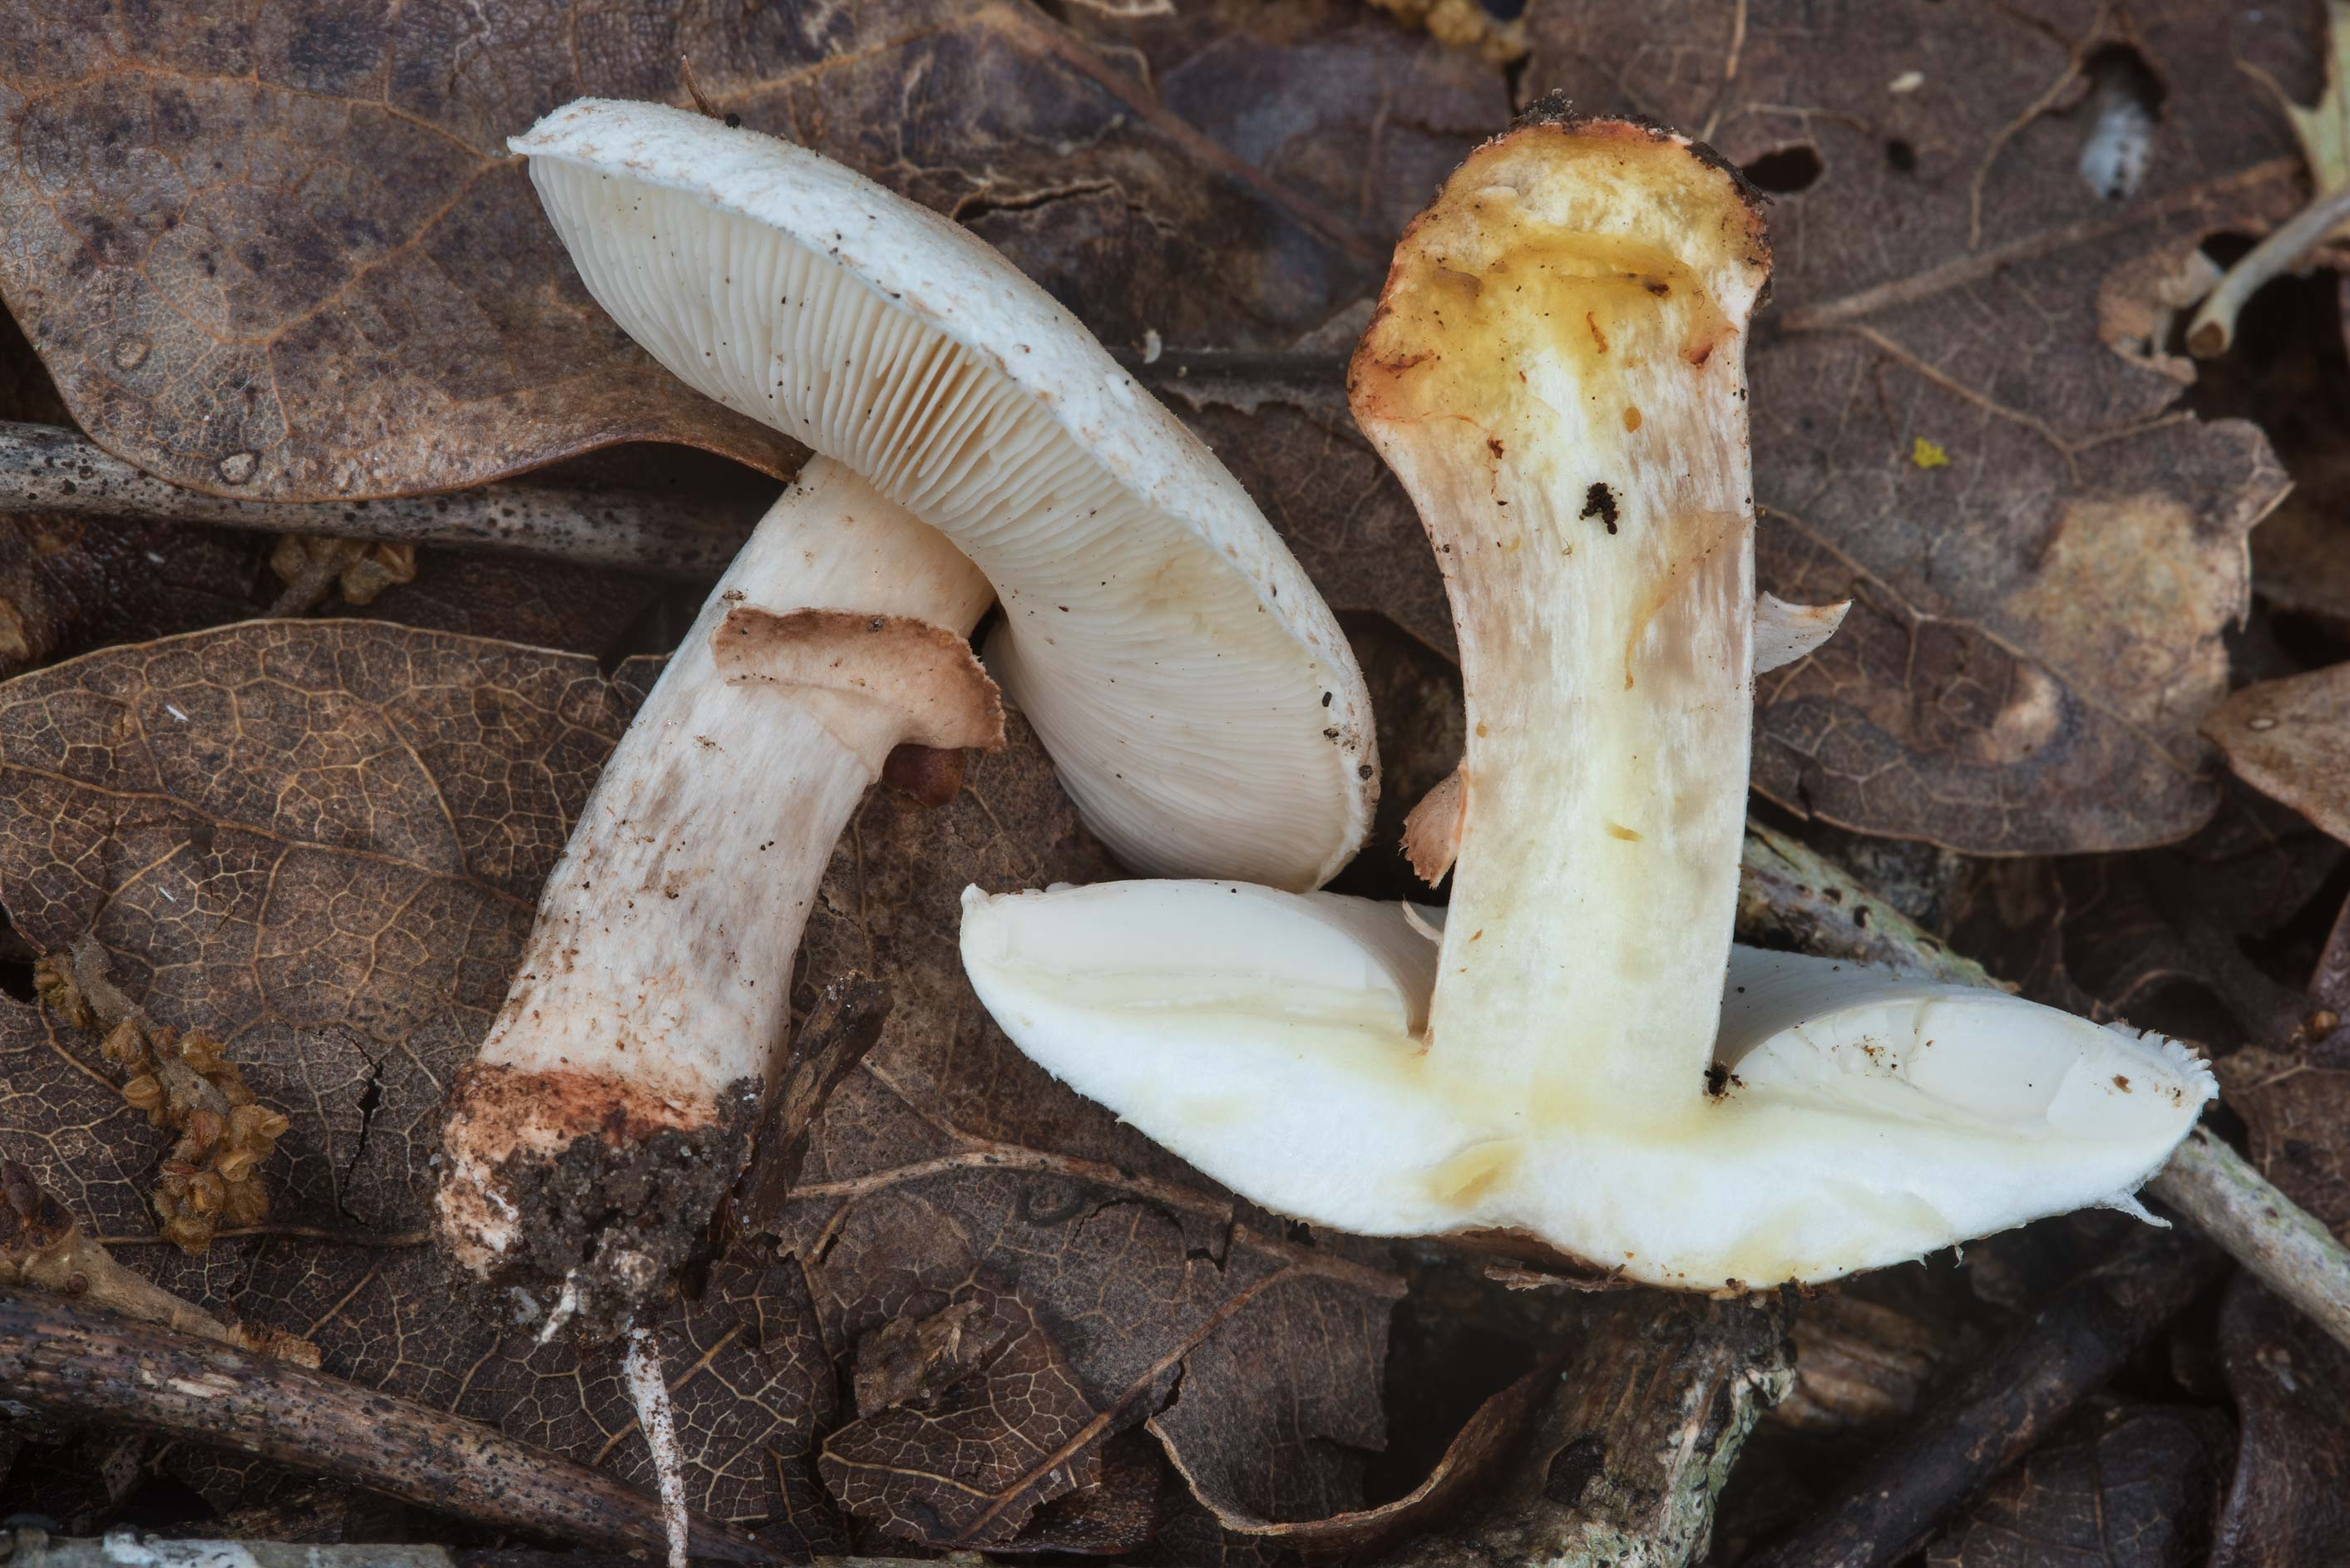 Dissected Amanita mushroom in Hensel Park. College Station, Texas